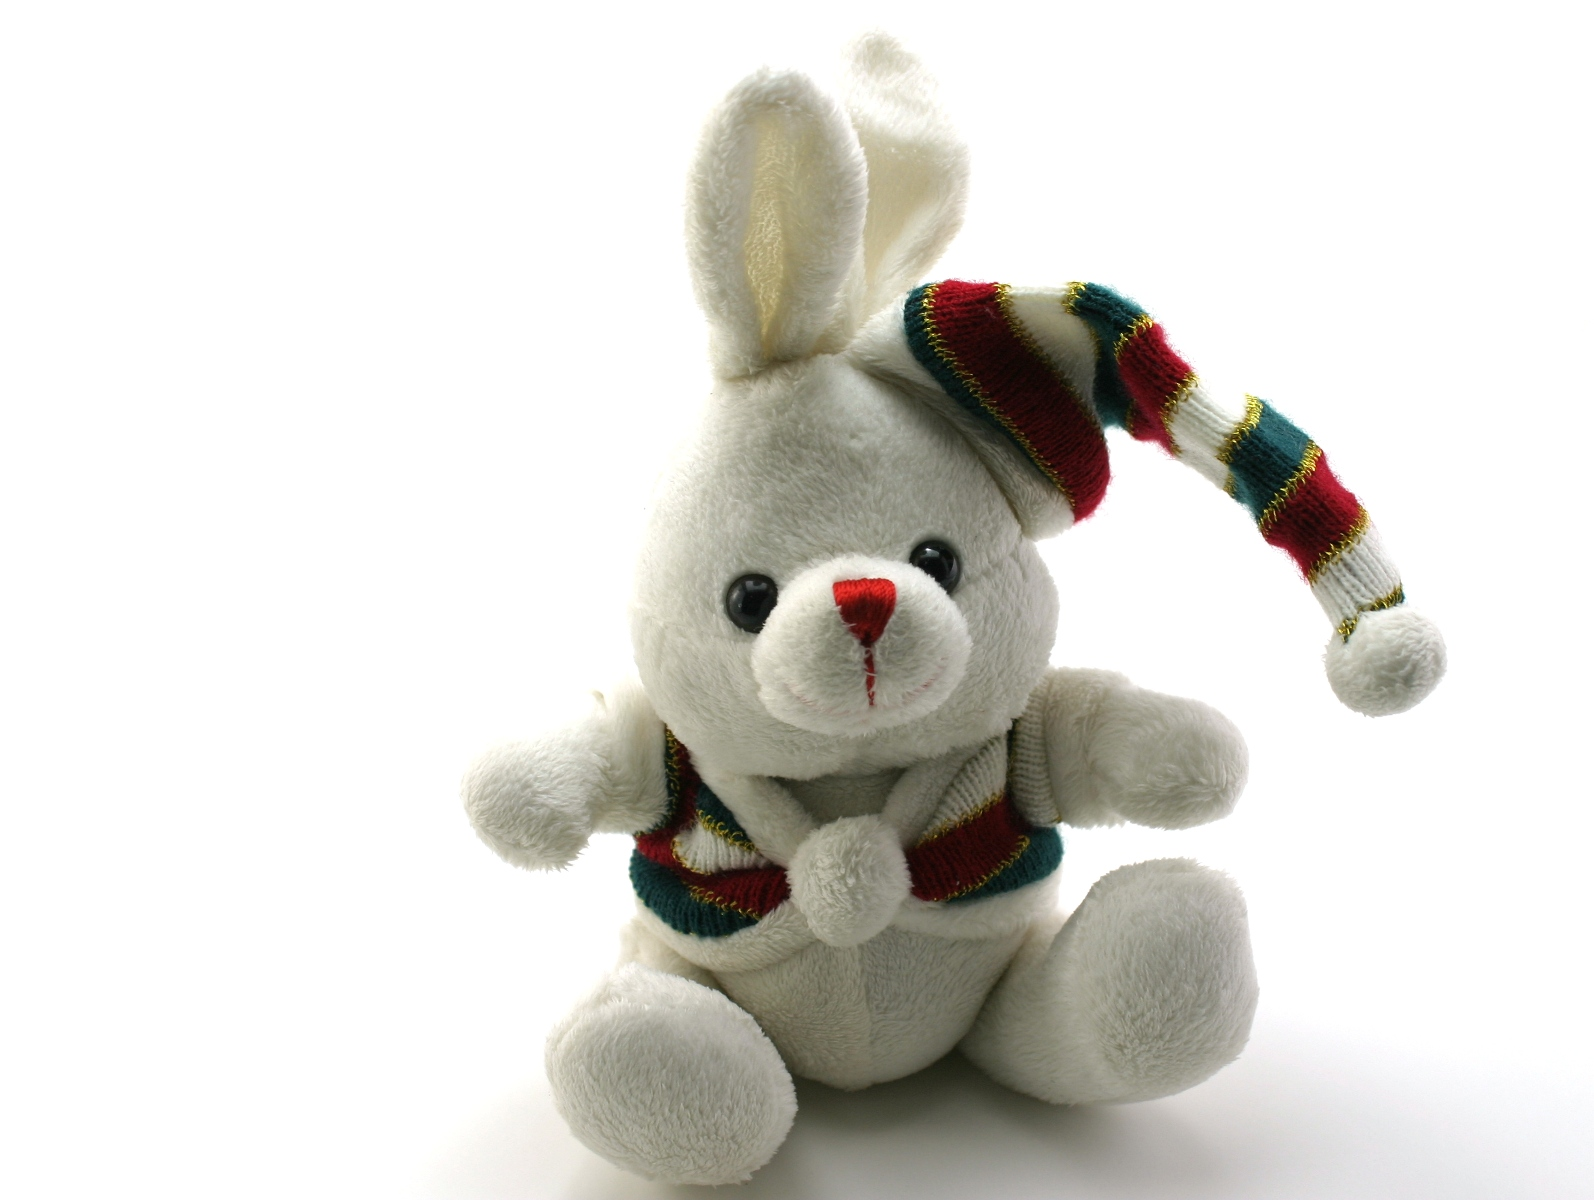 Adorable generic stuffed bunny, Adorable, Sitting, Isolated, Macro, HQ Photo